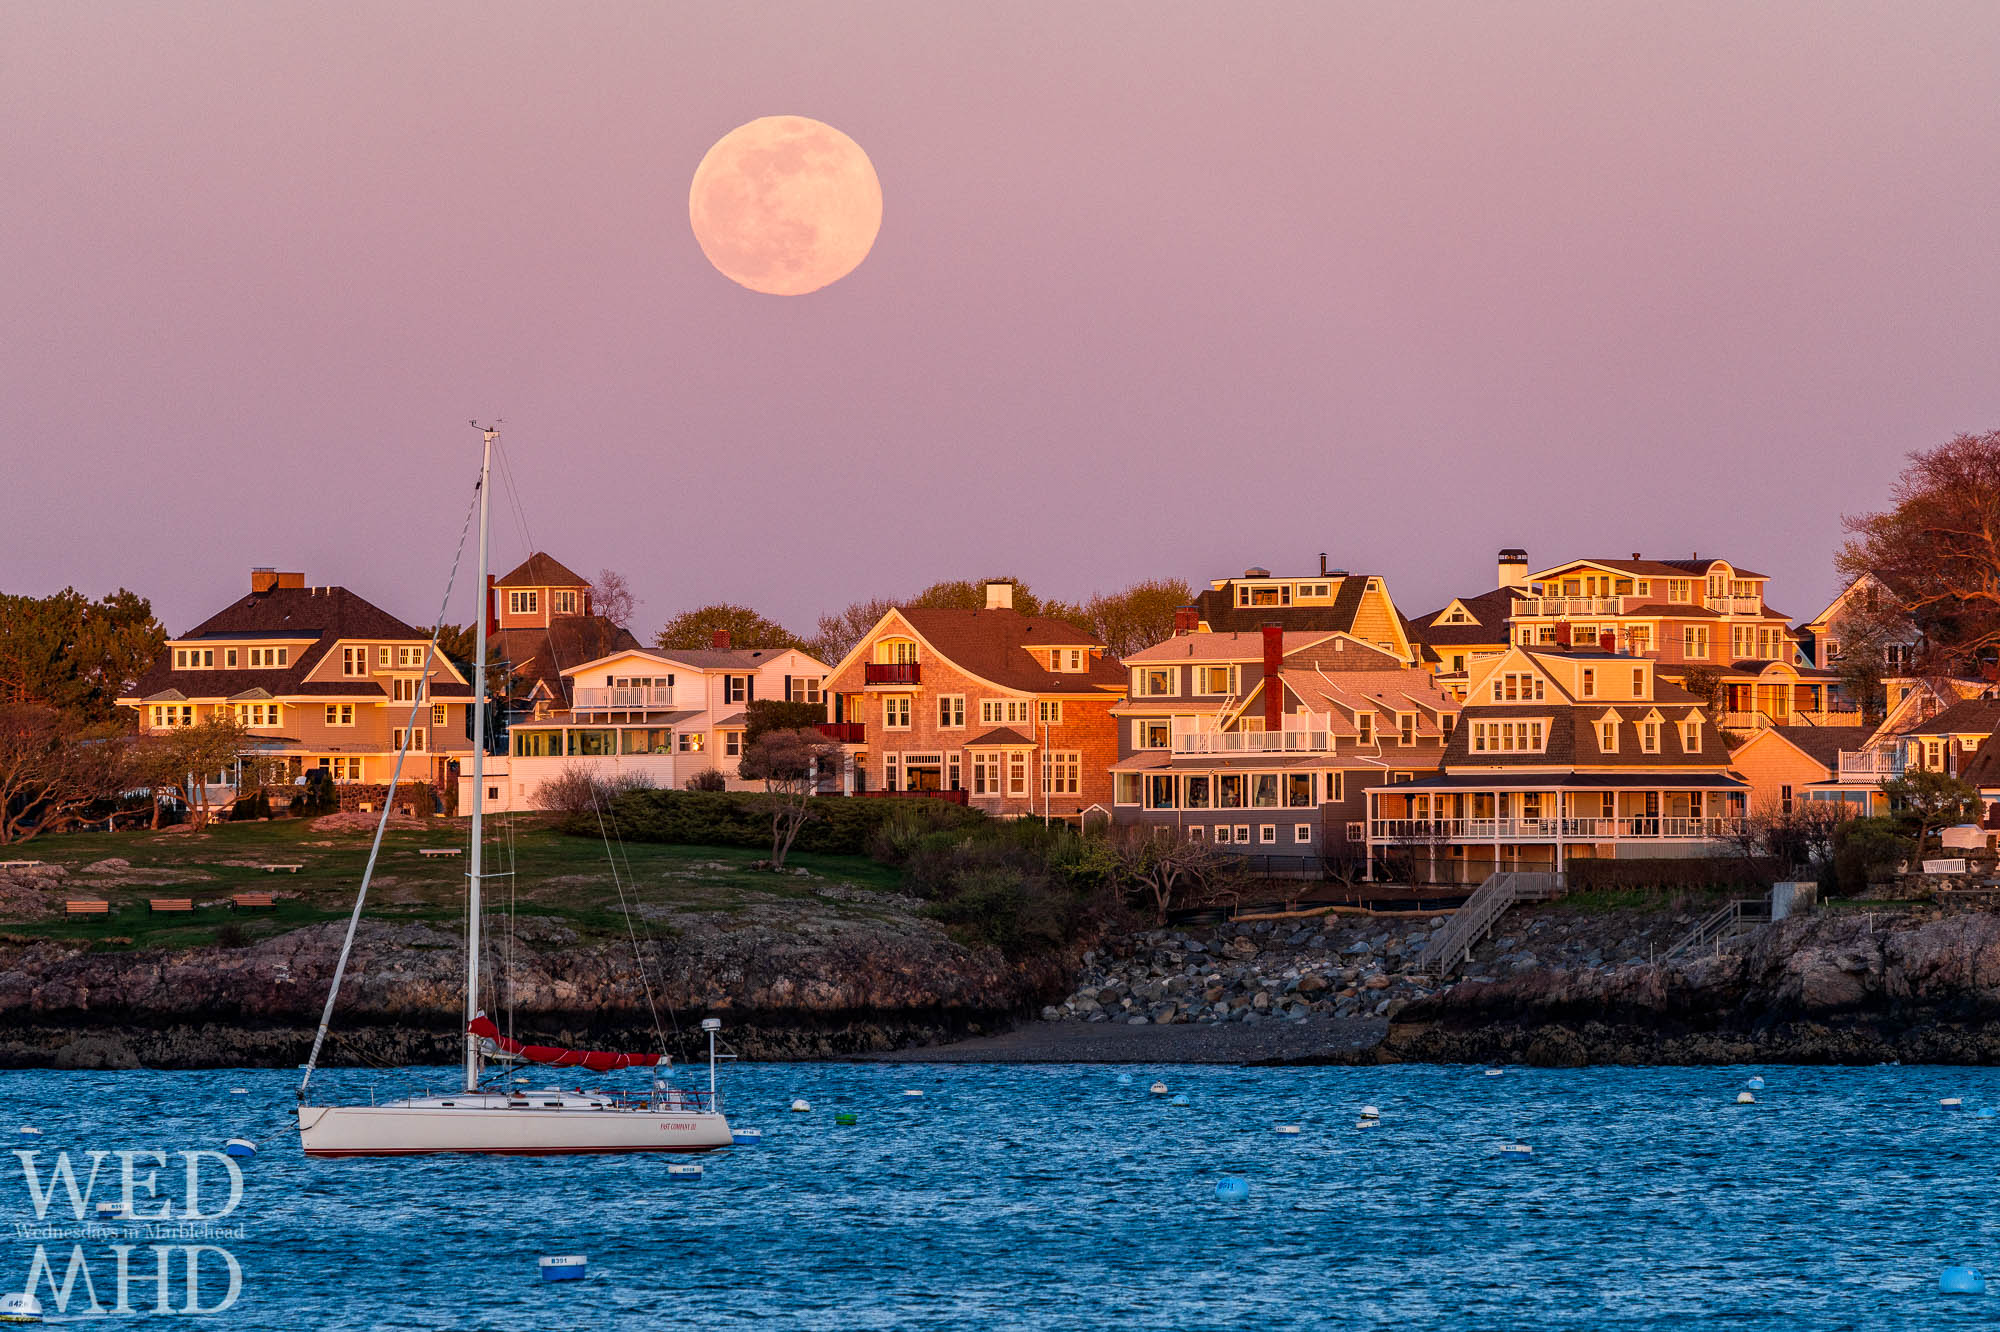 The full pink moonrise over houses on the Neck bathed in golden light from the setting sun with a lone sailboat moored in the harbor